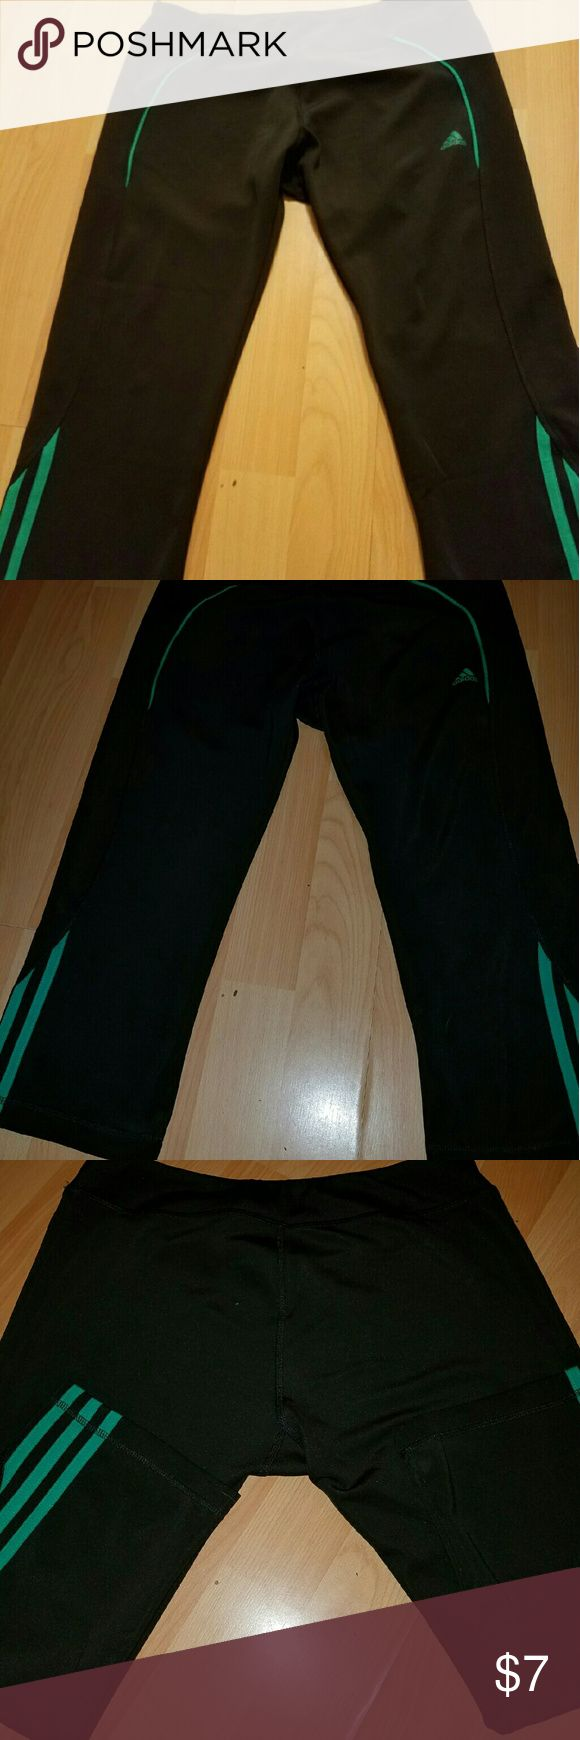 Adidas work out yoga pant Since large Adidas work out pants cropped style black with green stripes.  Good condition. Adidas Pants Track Pants & Joggers